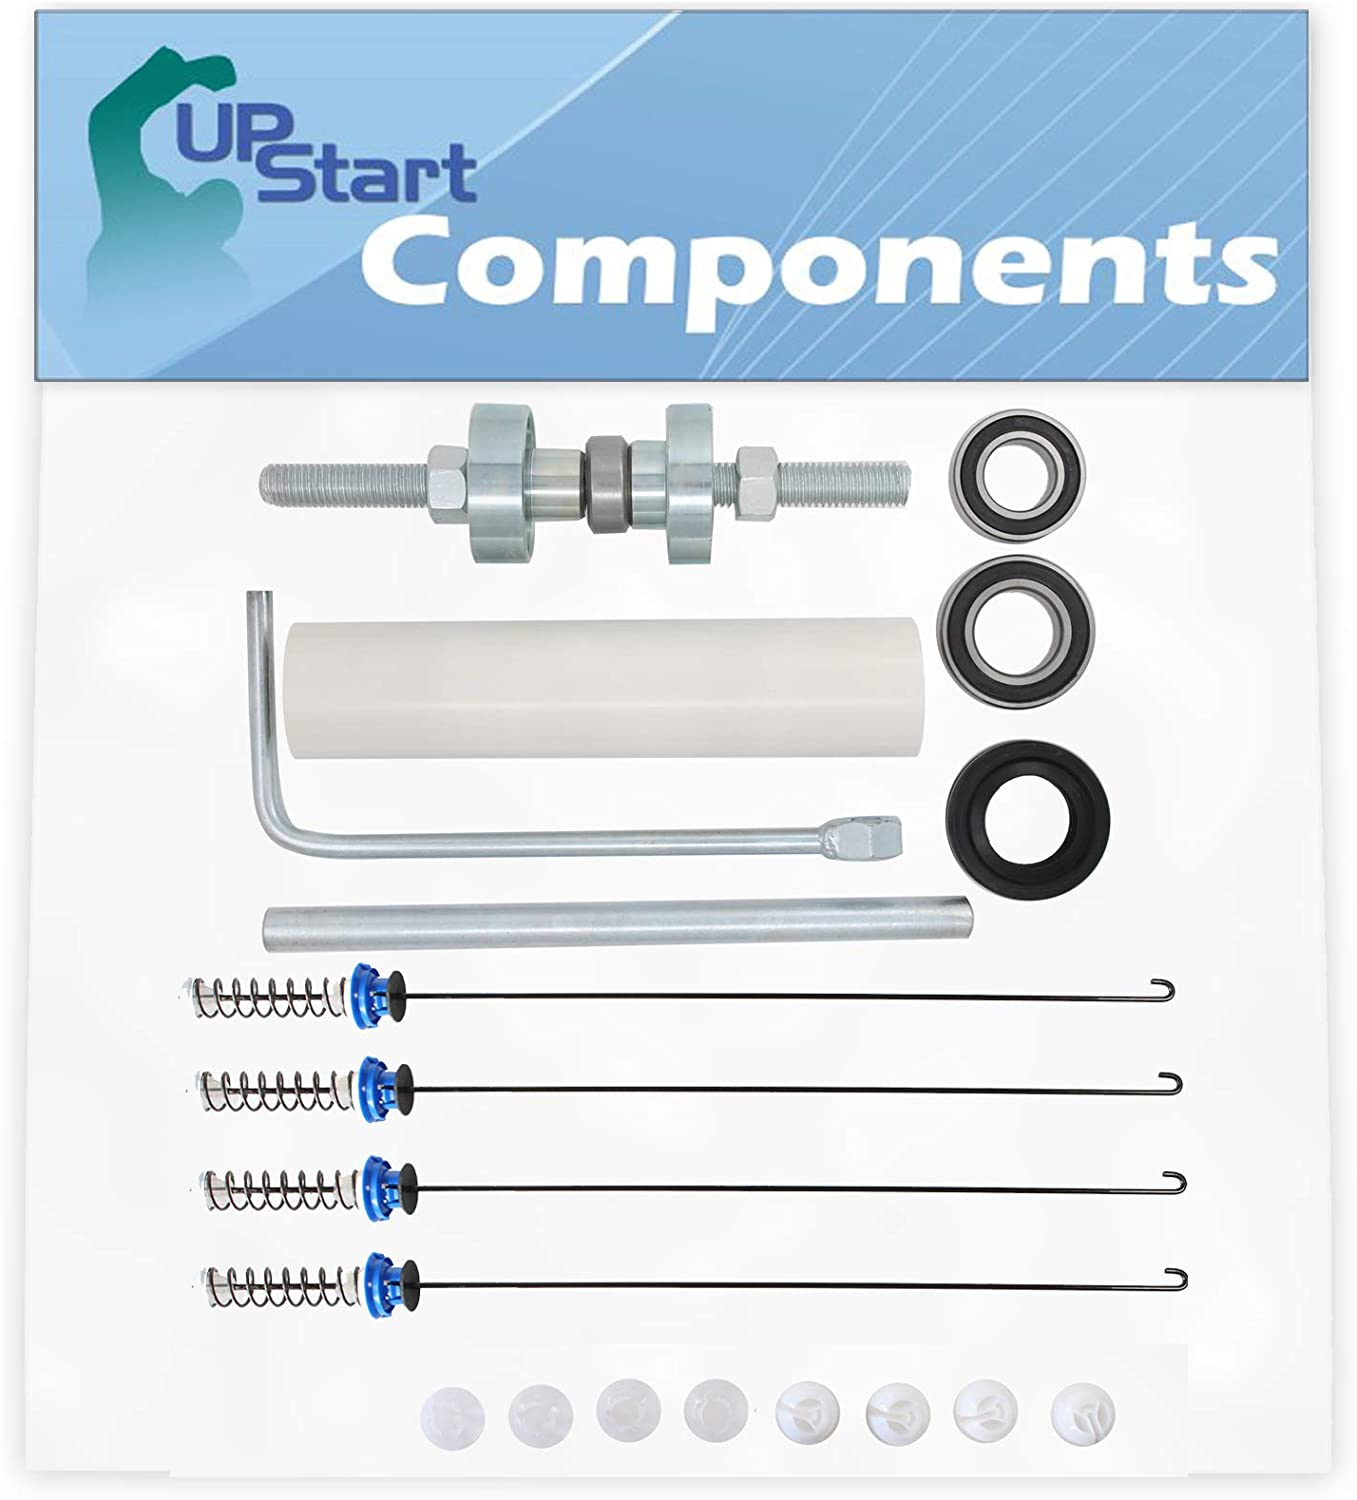 W10447783 Washer Tub Bearing Installation Tool & W10820048 Suspension Rod Kit Replacement for Whirlpool WTW6400SW0 - Compatible W10447783 Tool Kit & W10189077 Suspension Spring Kit